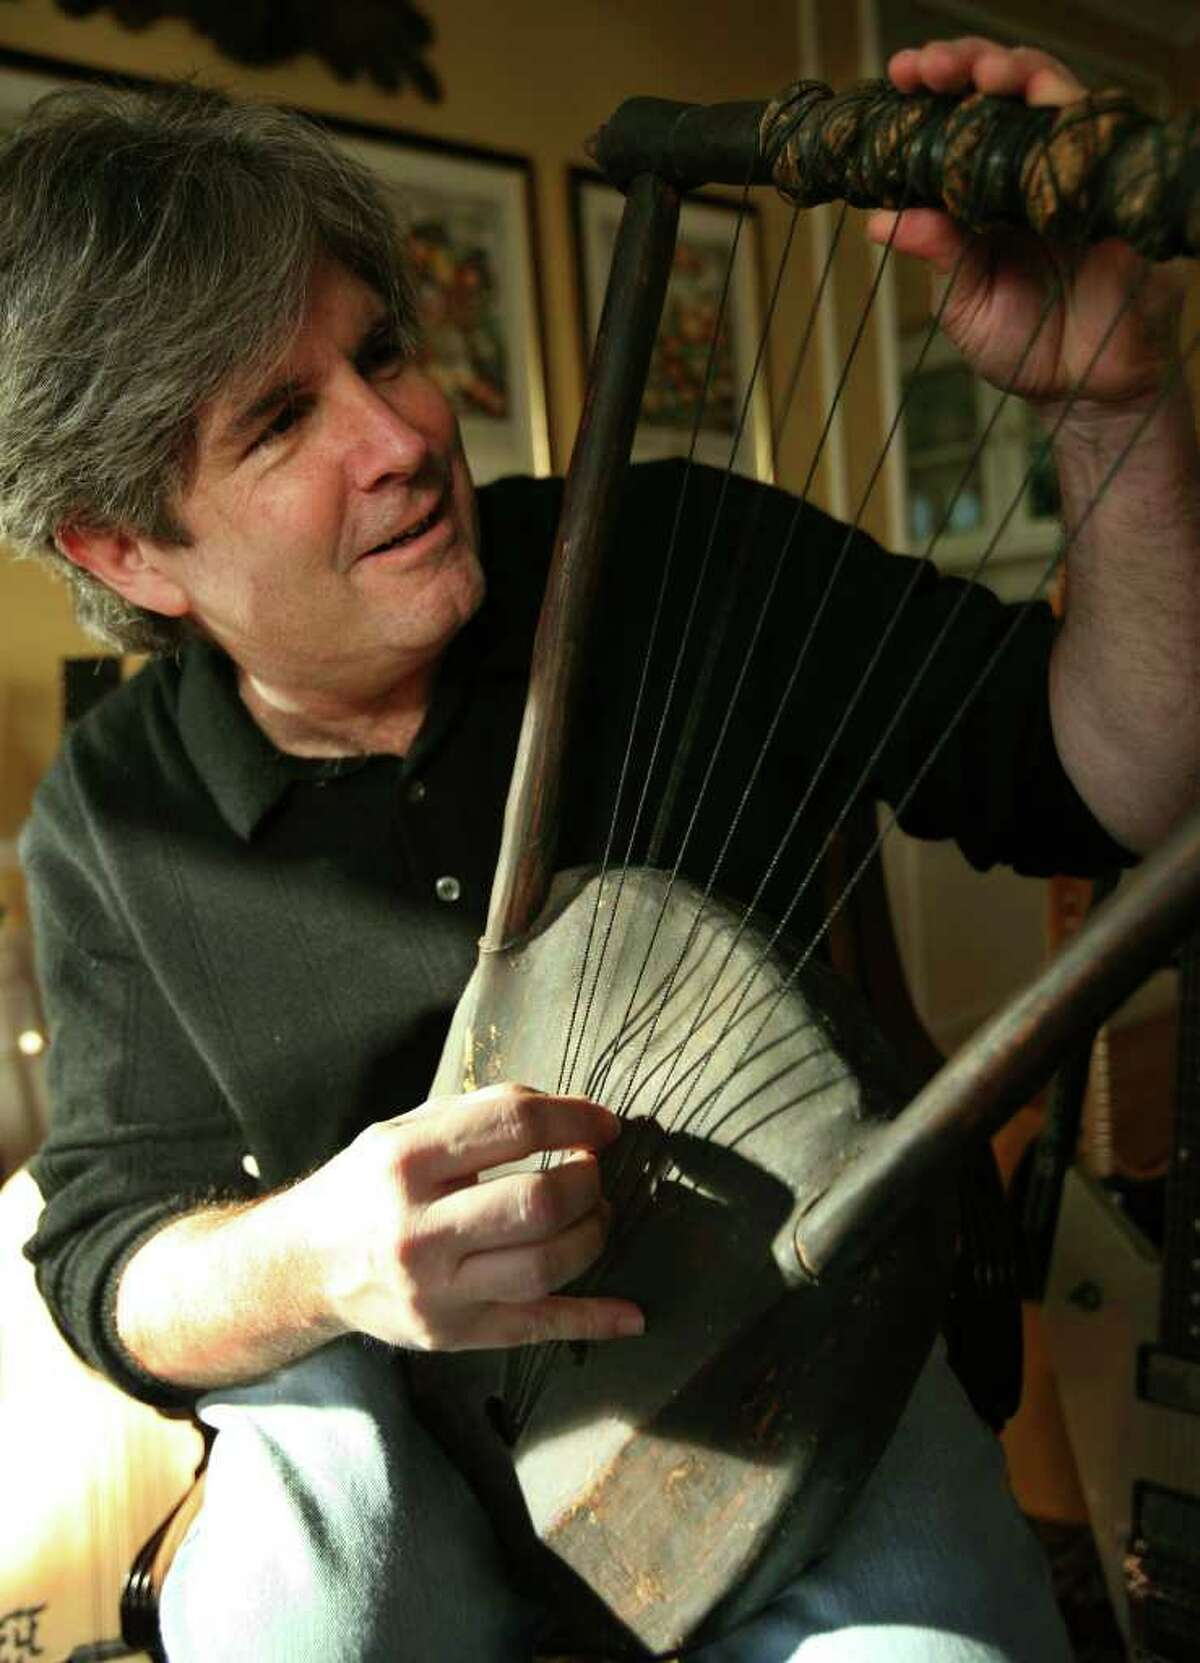 Harvey Newquist of Fairfield, demonstrates an African stringed instrument called a nyatiti. Plucked tones can be raised and lowered by turning the wheels at the top of the instrument.